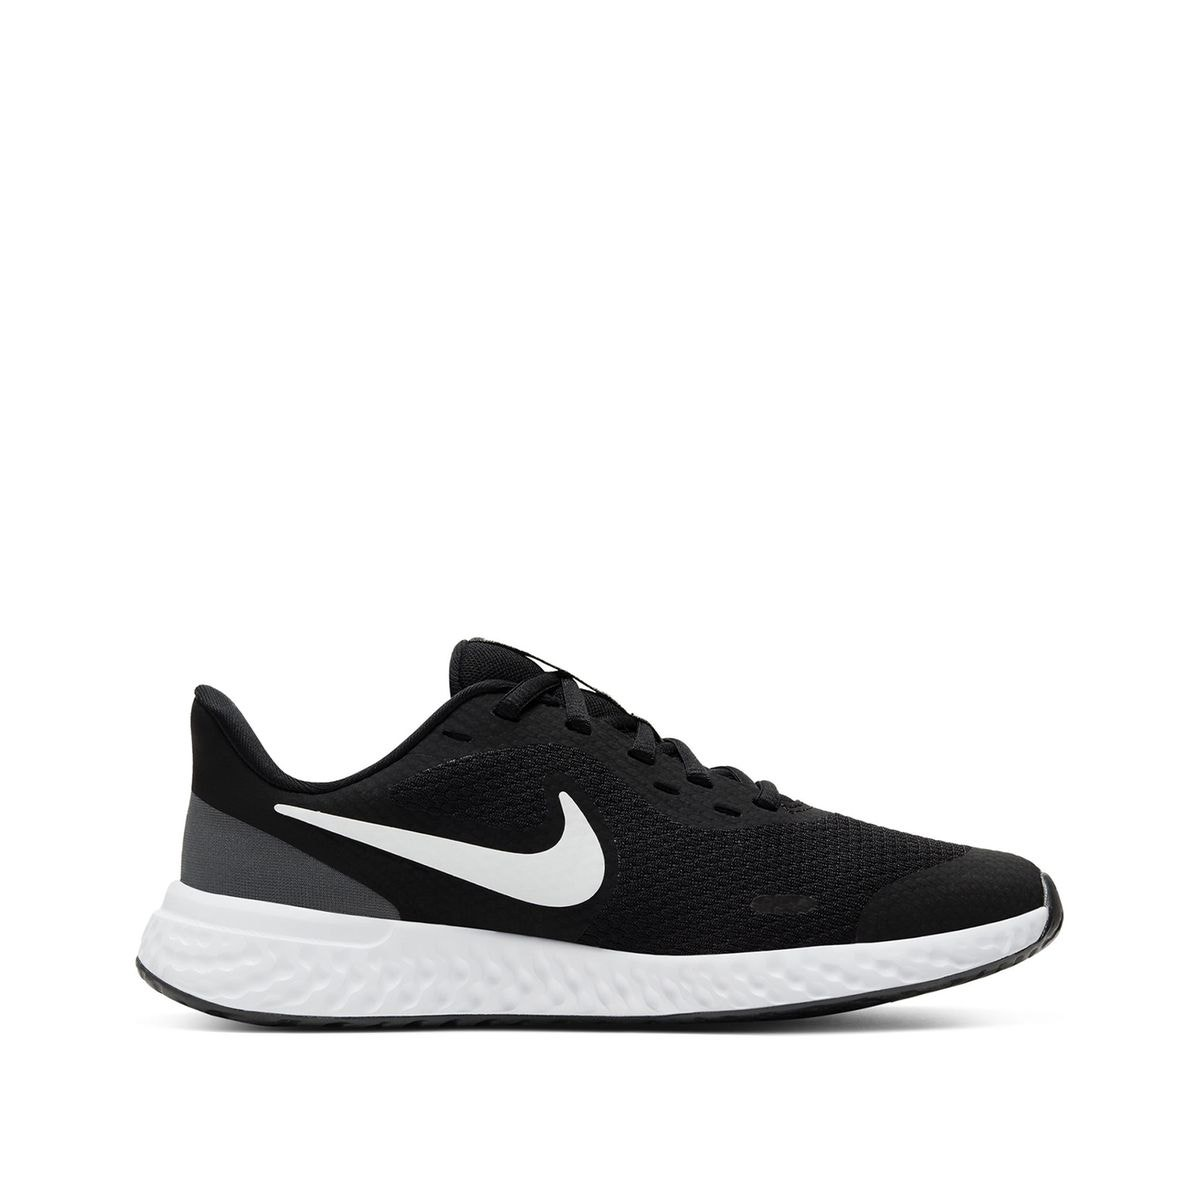 Chaussures Nike fille   La Redoute